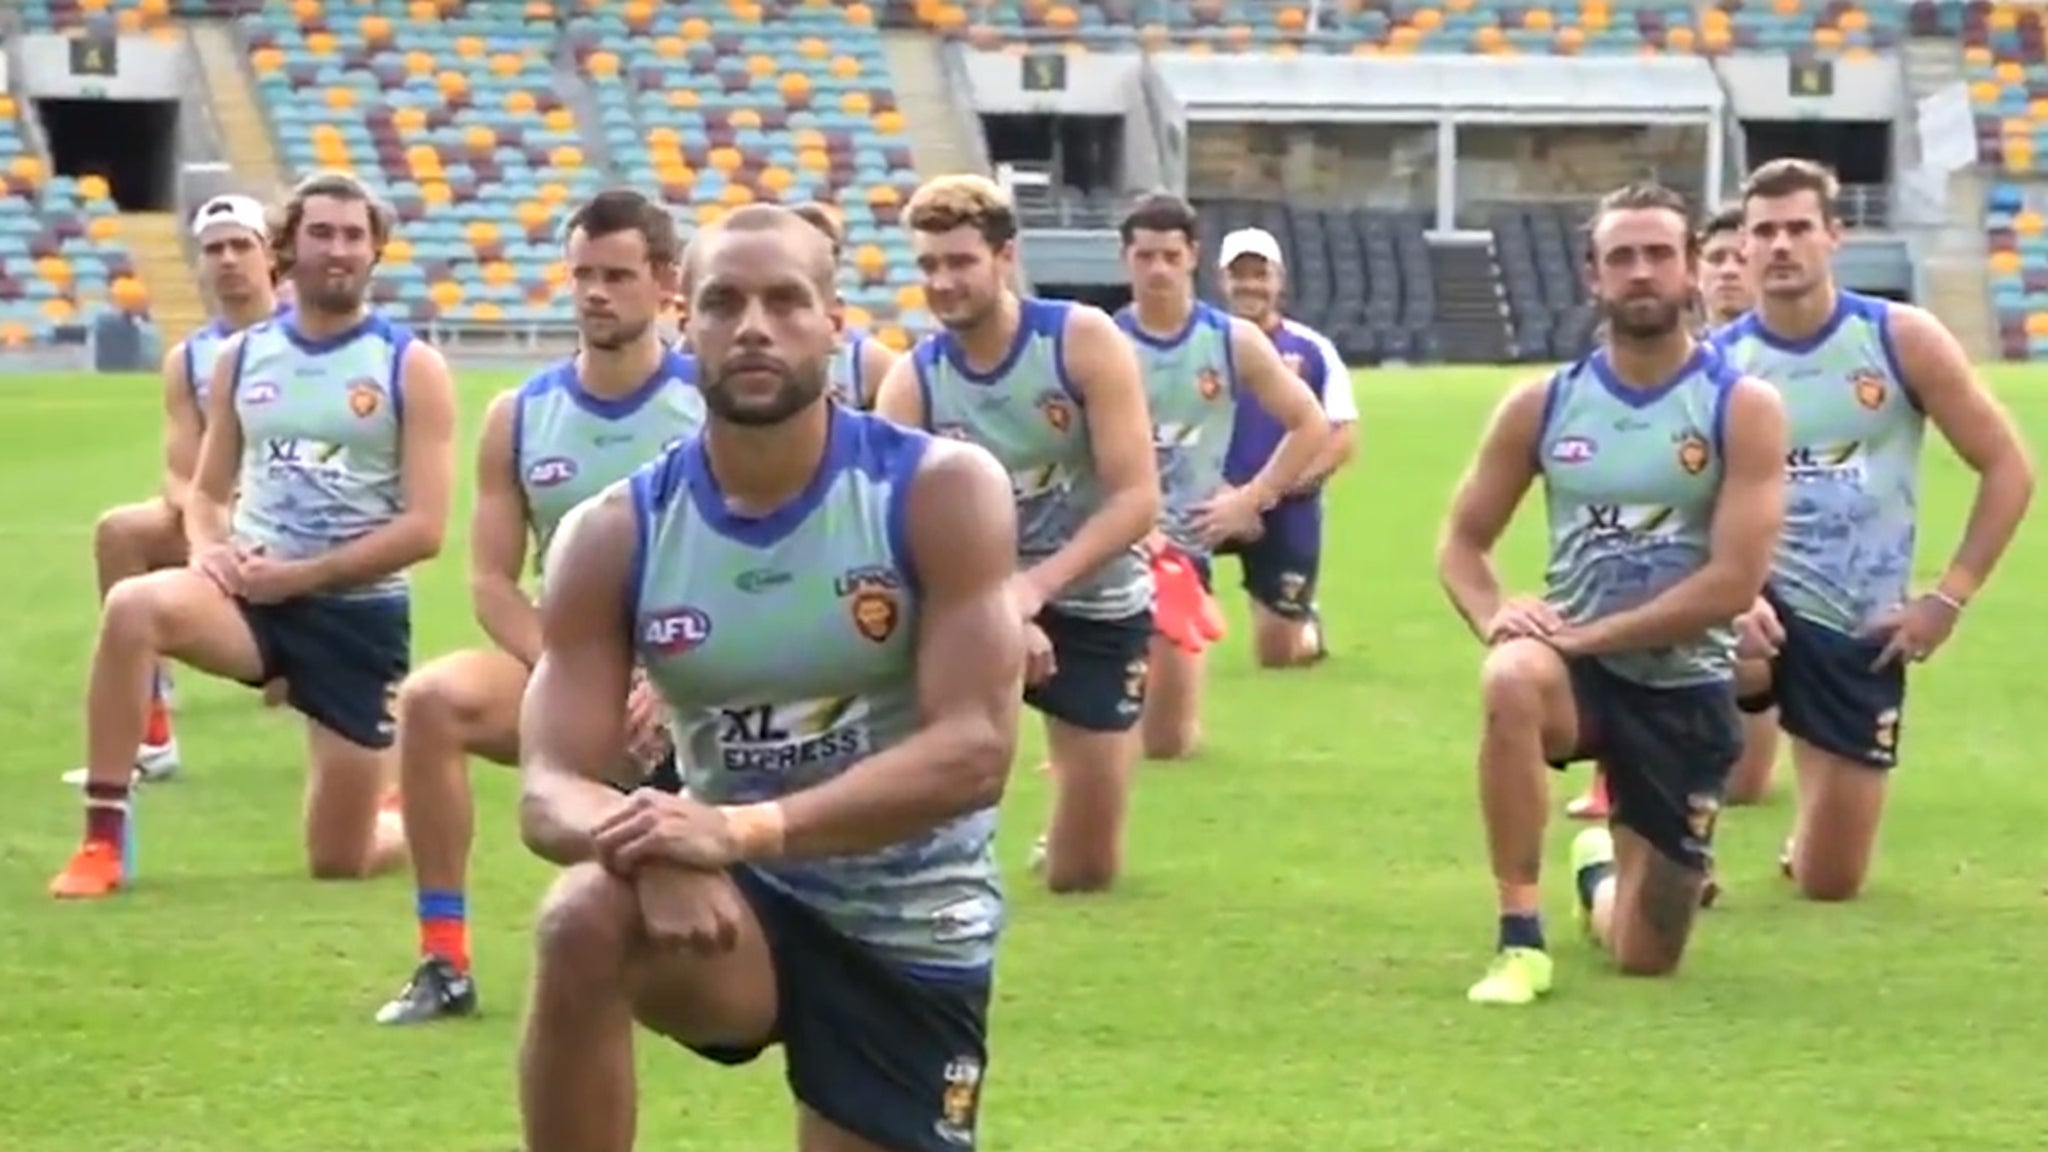 Colin Kaepernick Kneeling Protest Spreads to Australia ... Aussie Rules Team Sends Message